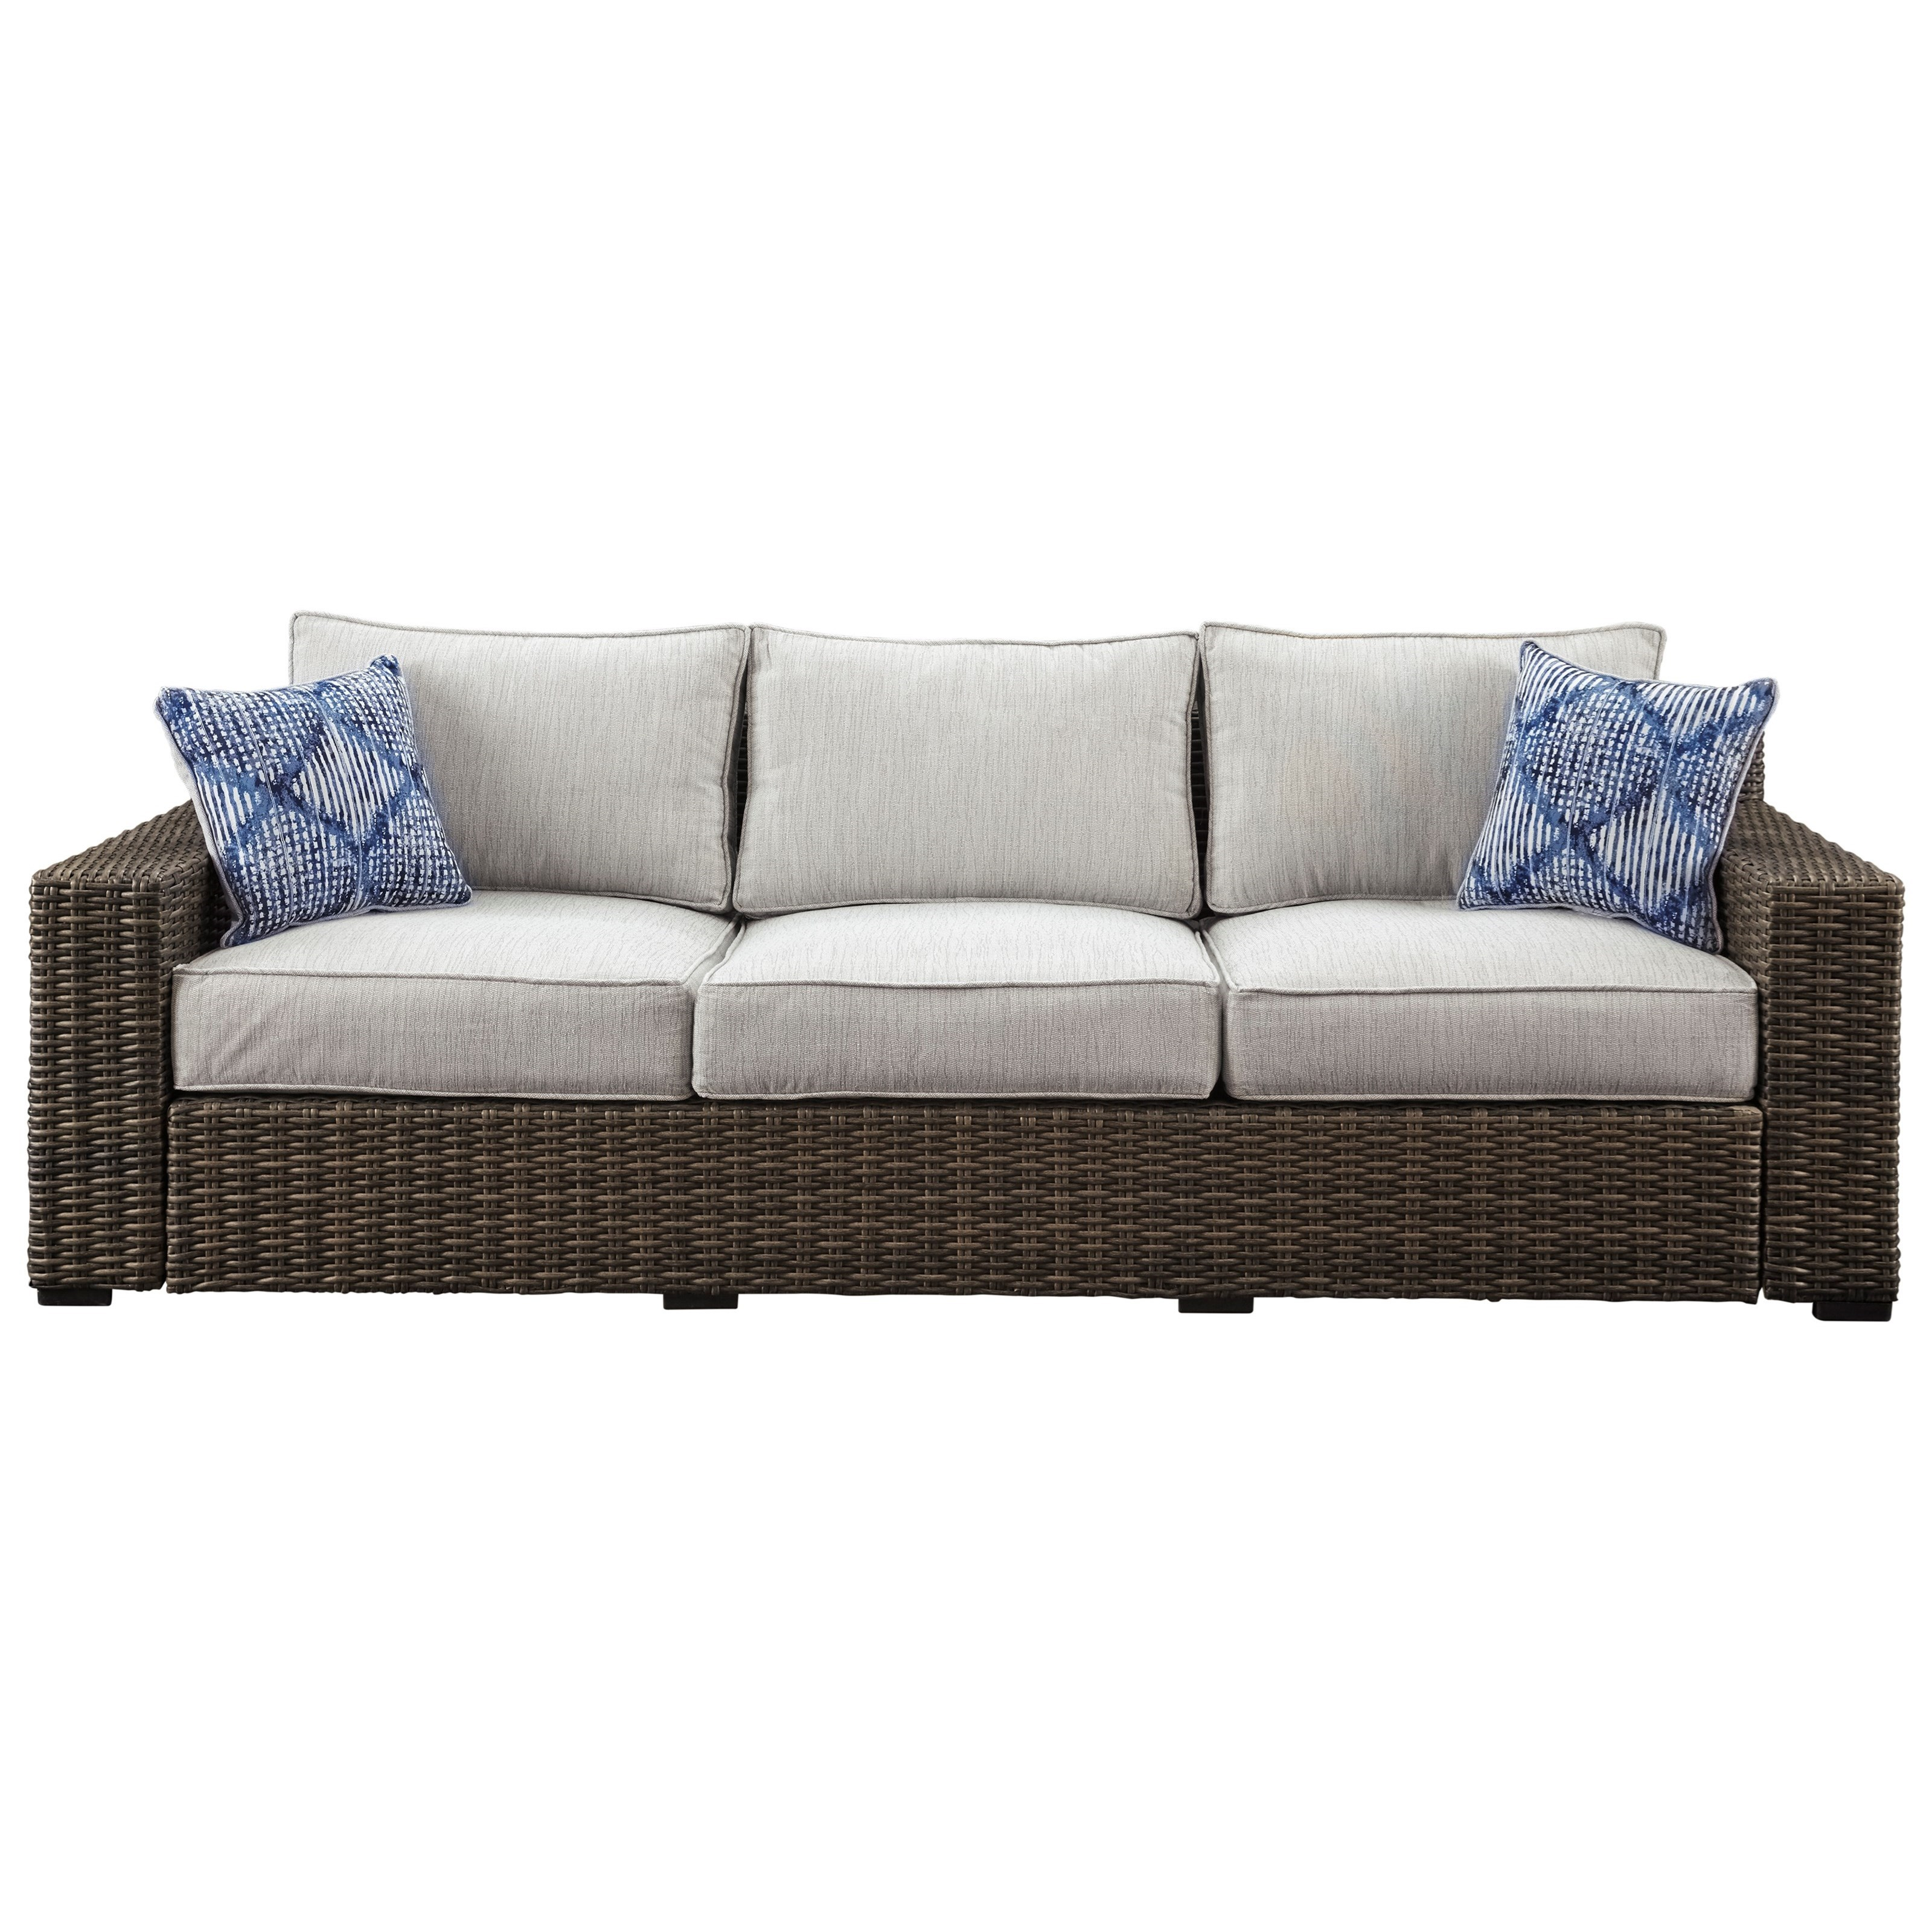 Trendz Woven Paradise Sofa with Cushion - Item Number: P782-838